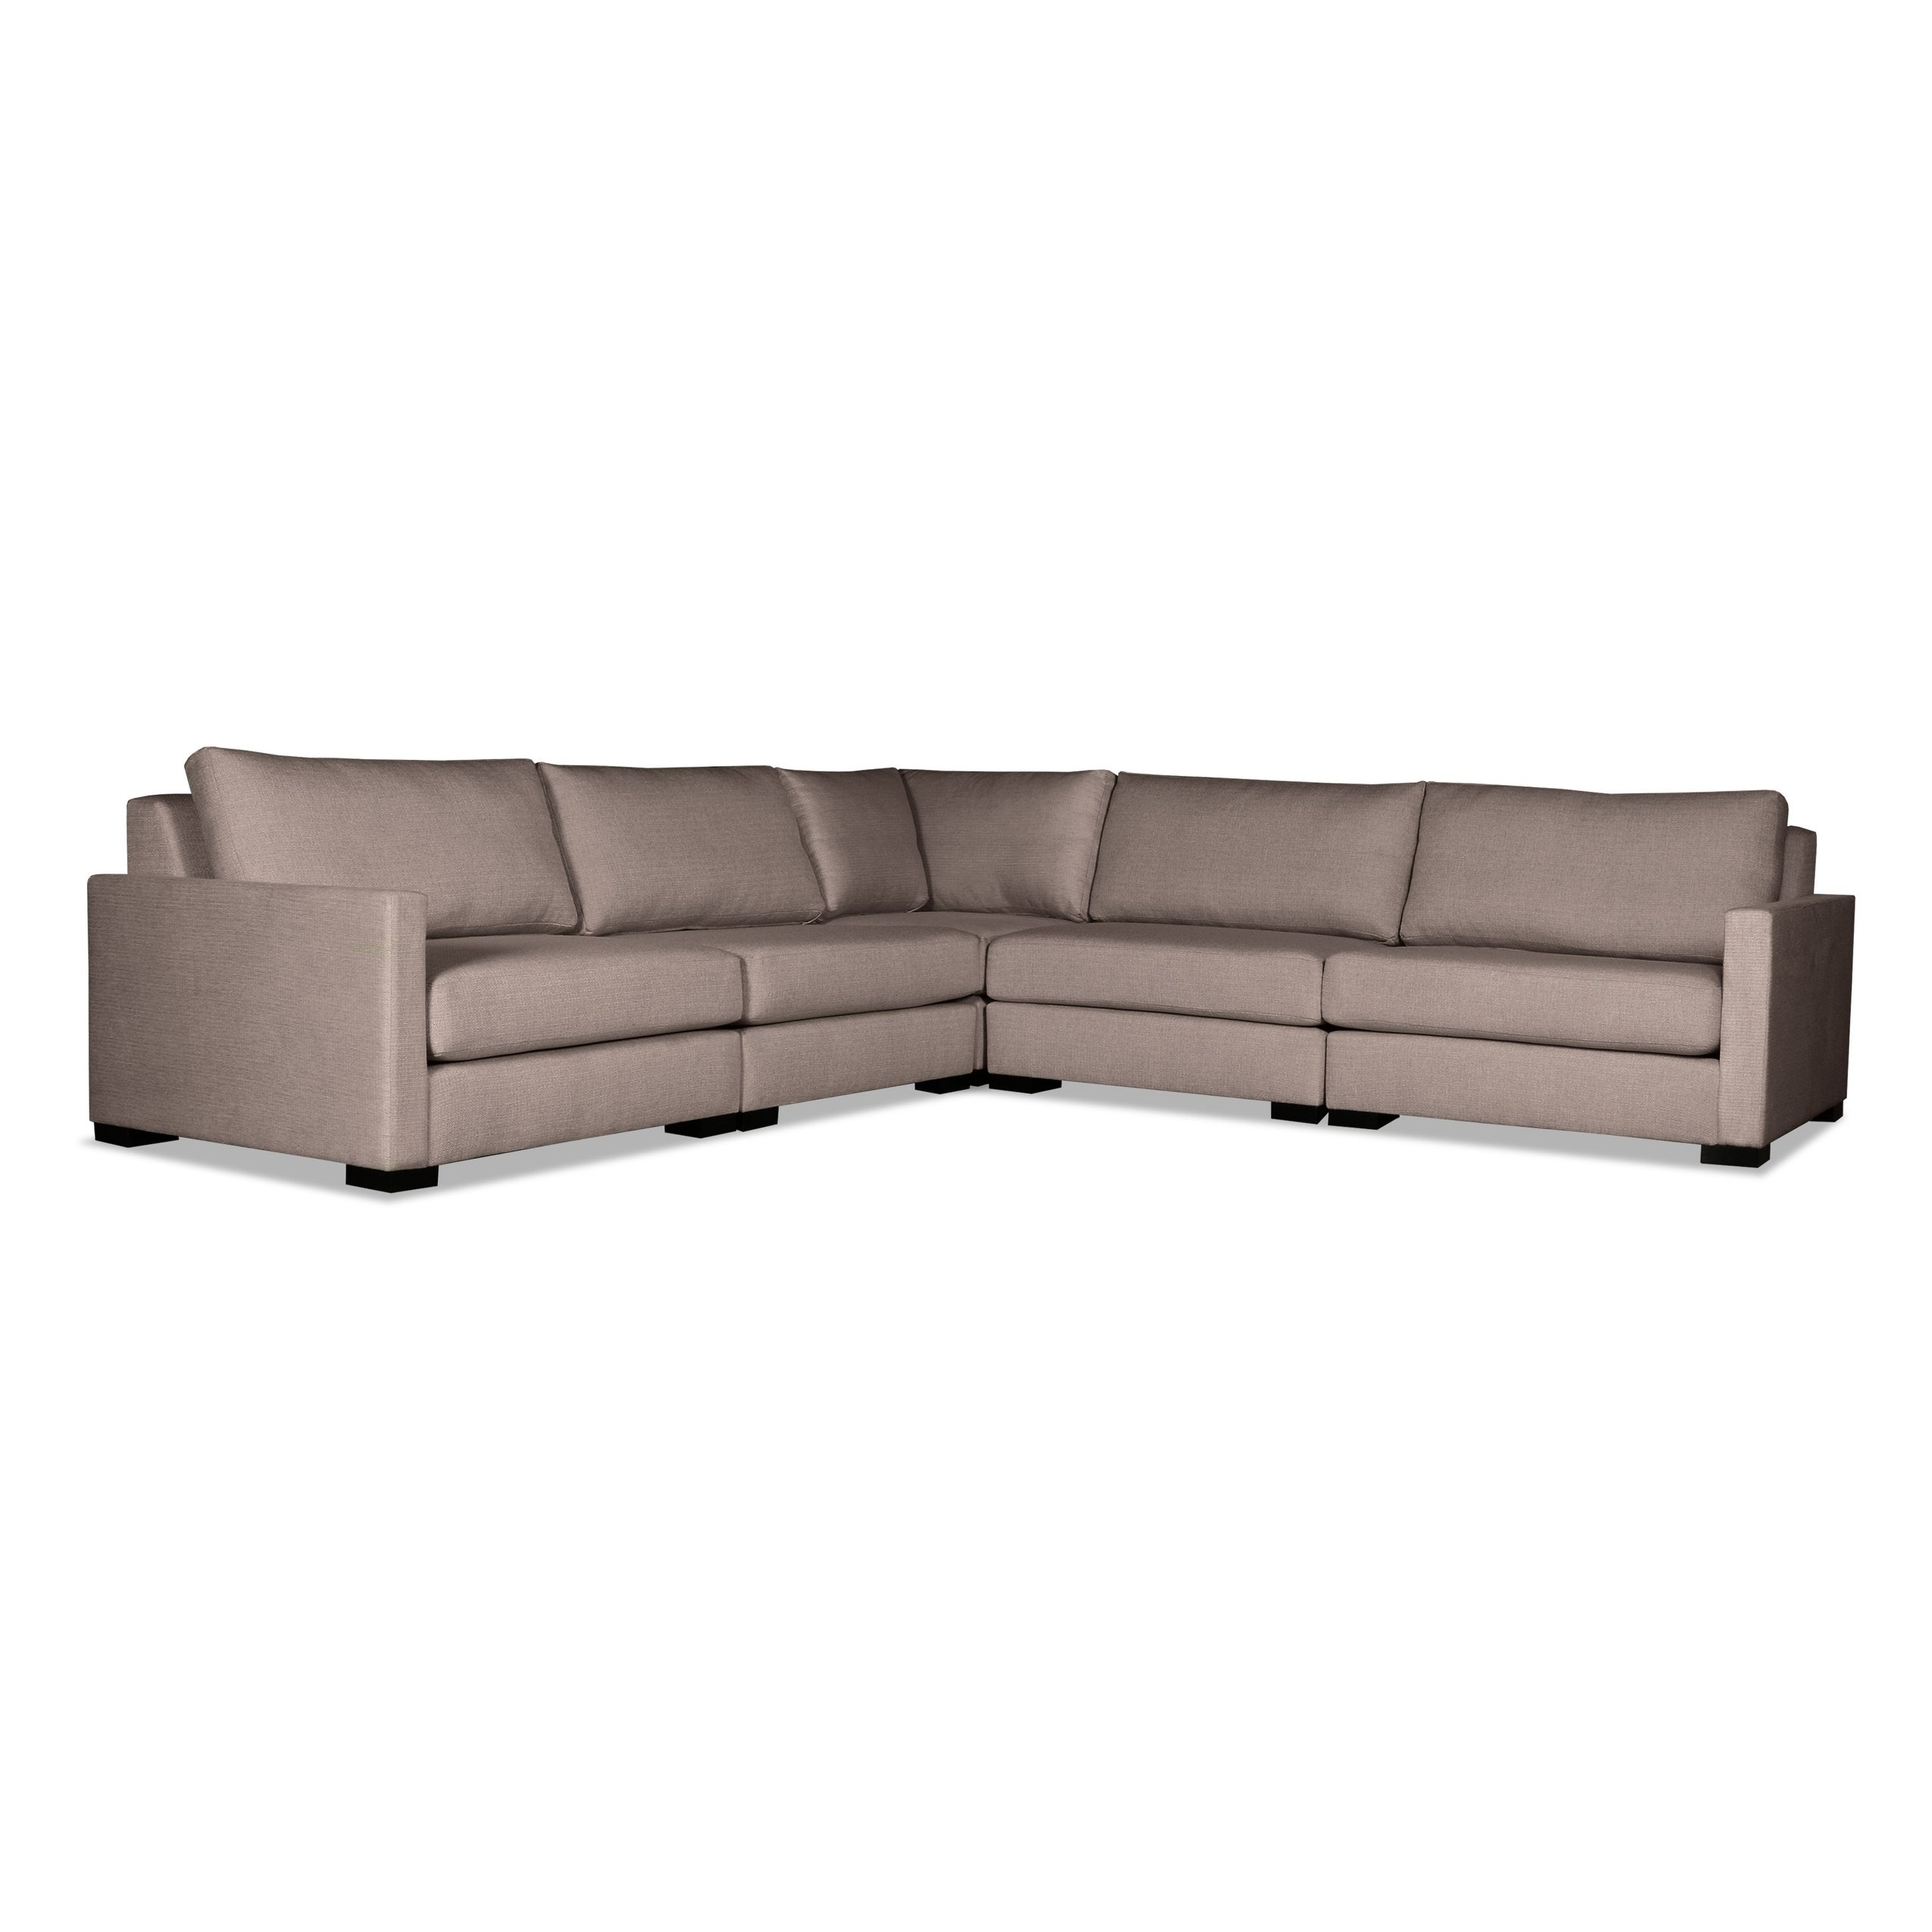 Astounding Mayfair Modular Sectional Right And Left Arms L Shape Standard Pdpeps Interior Chair Design Pdpepsorg